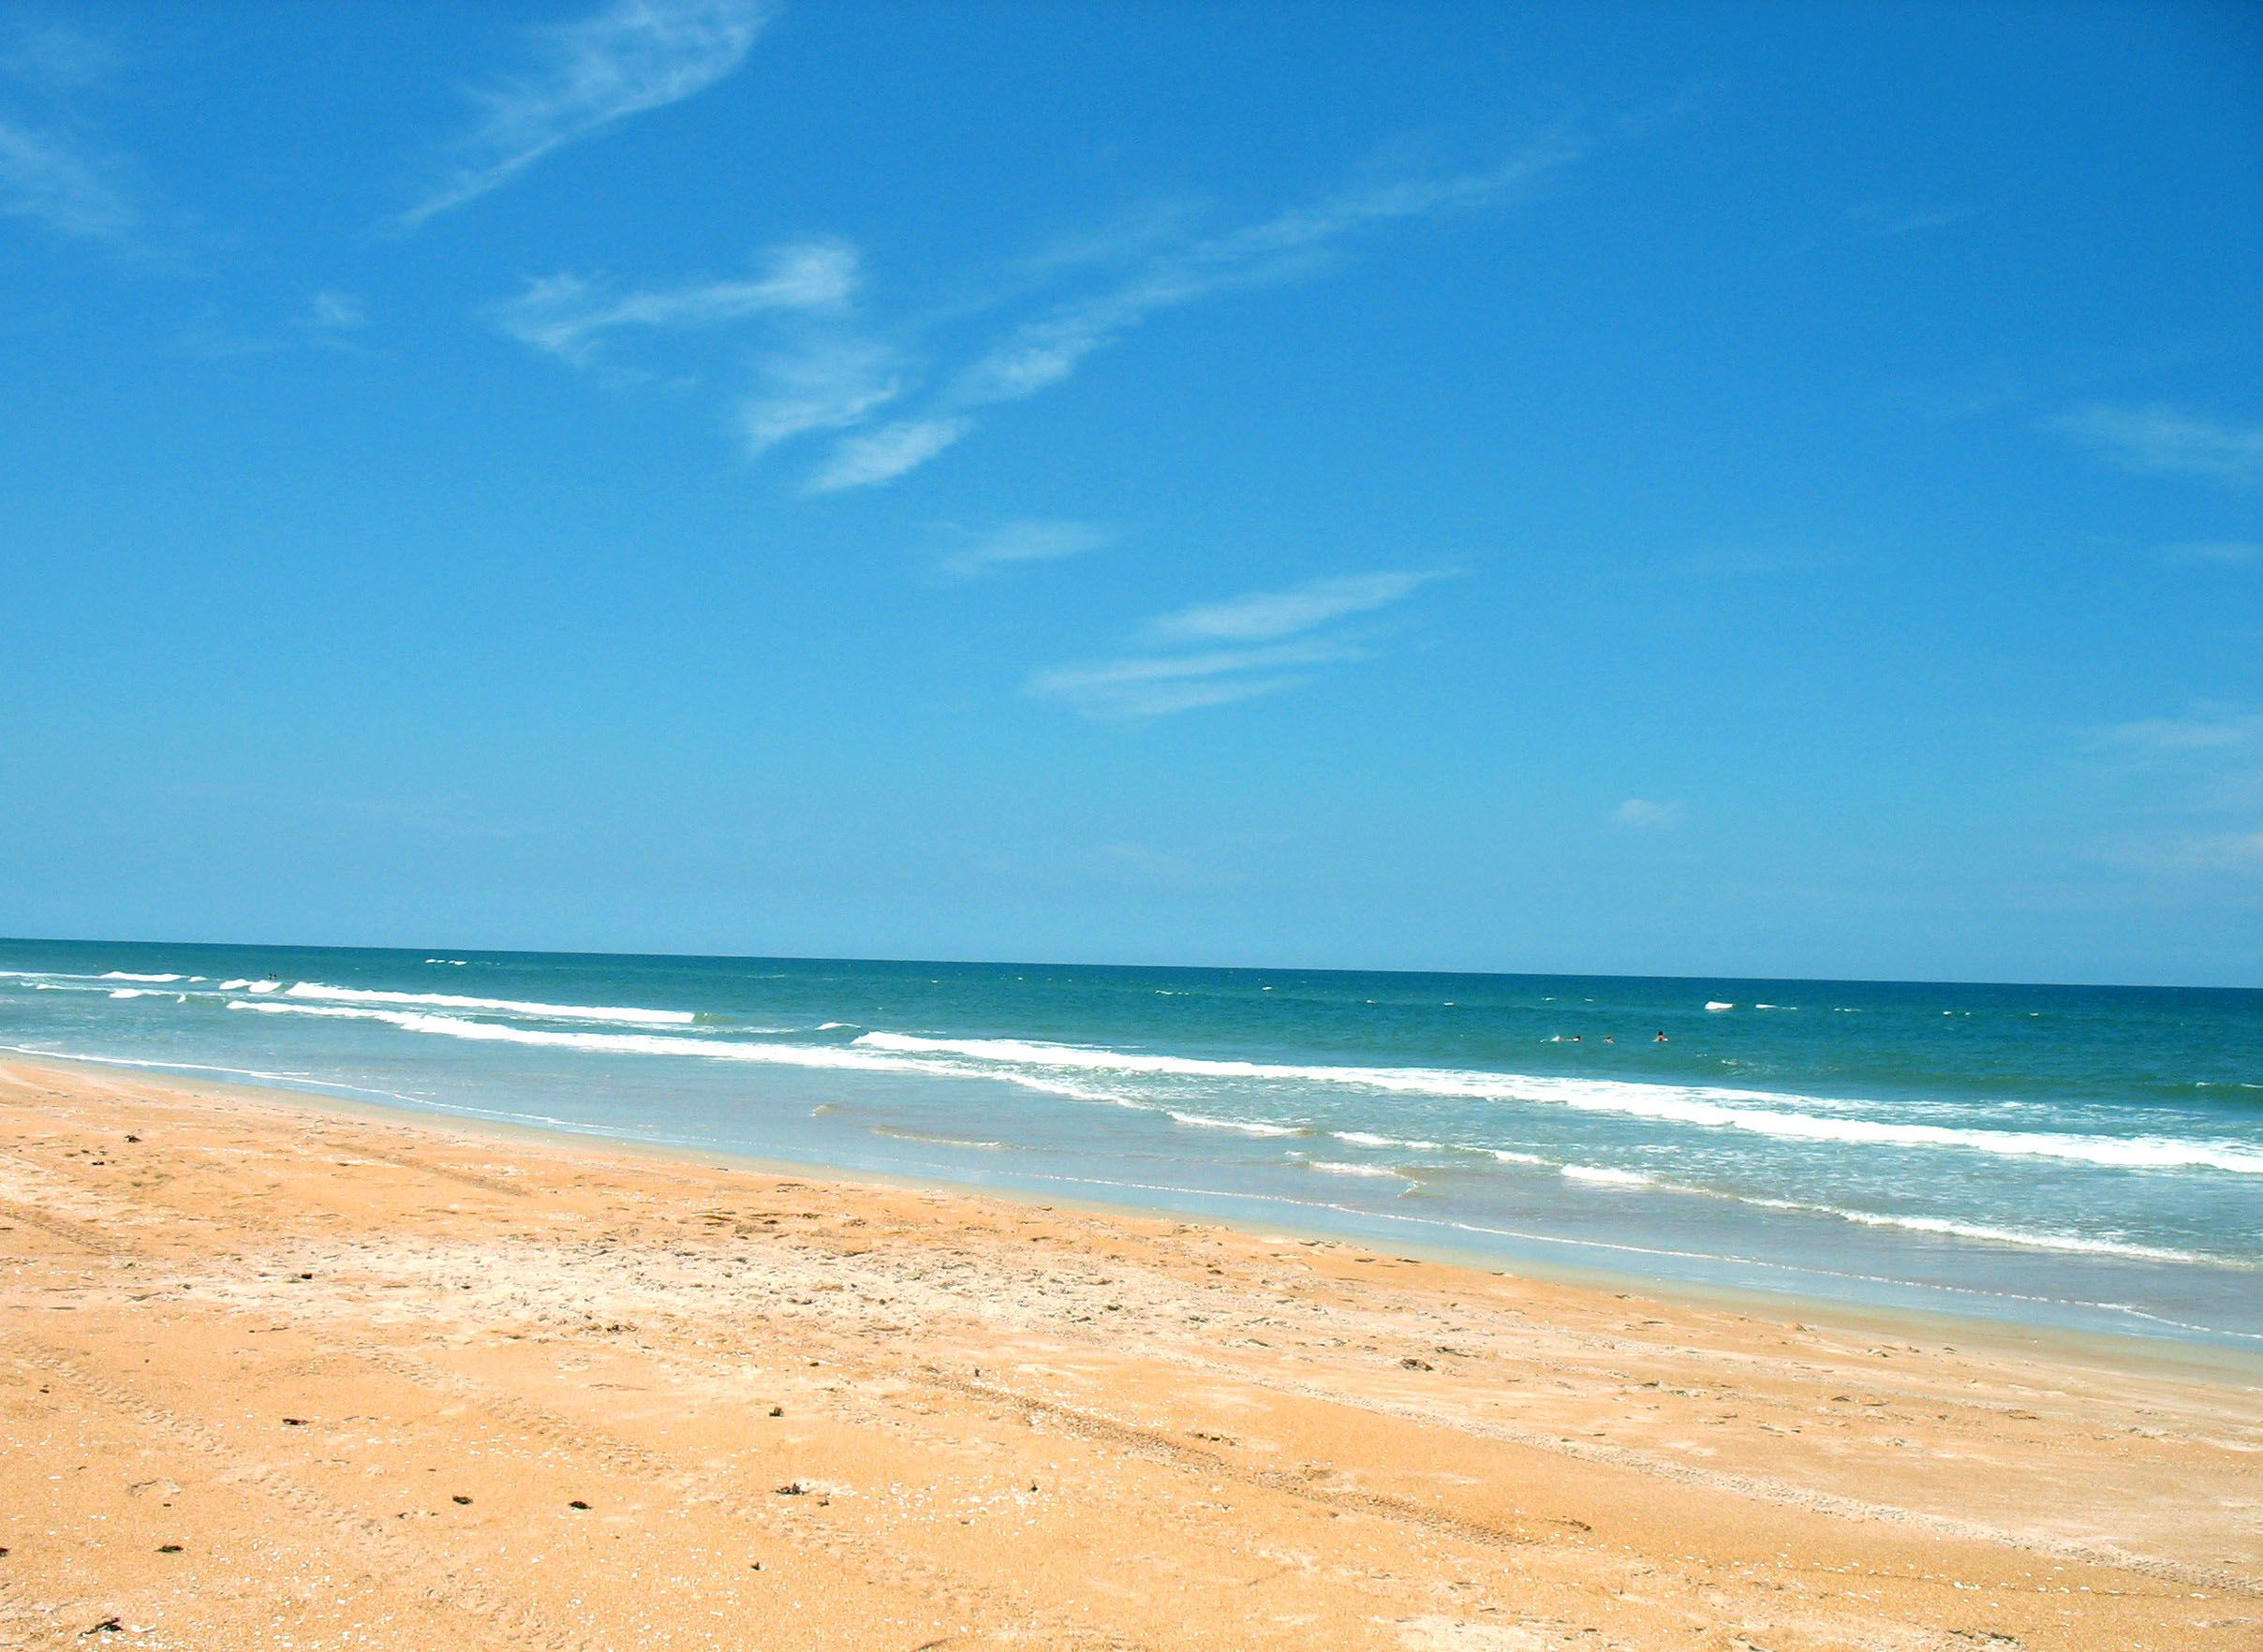 Ormond Beach Fl I Remember This Place Because The Ocean Water Was Soo Blue